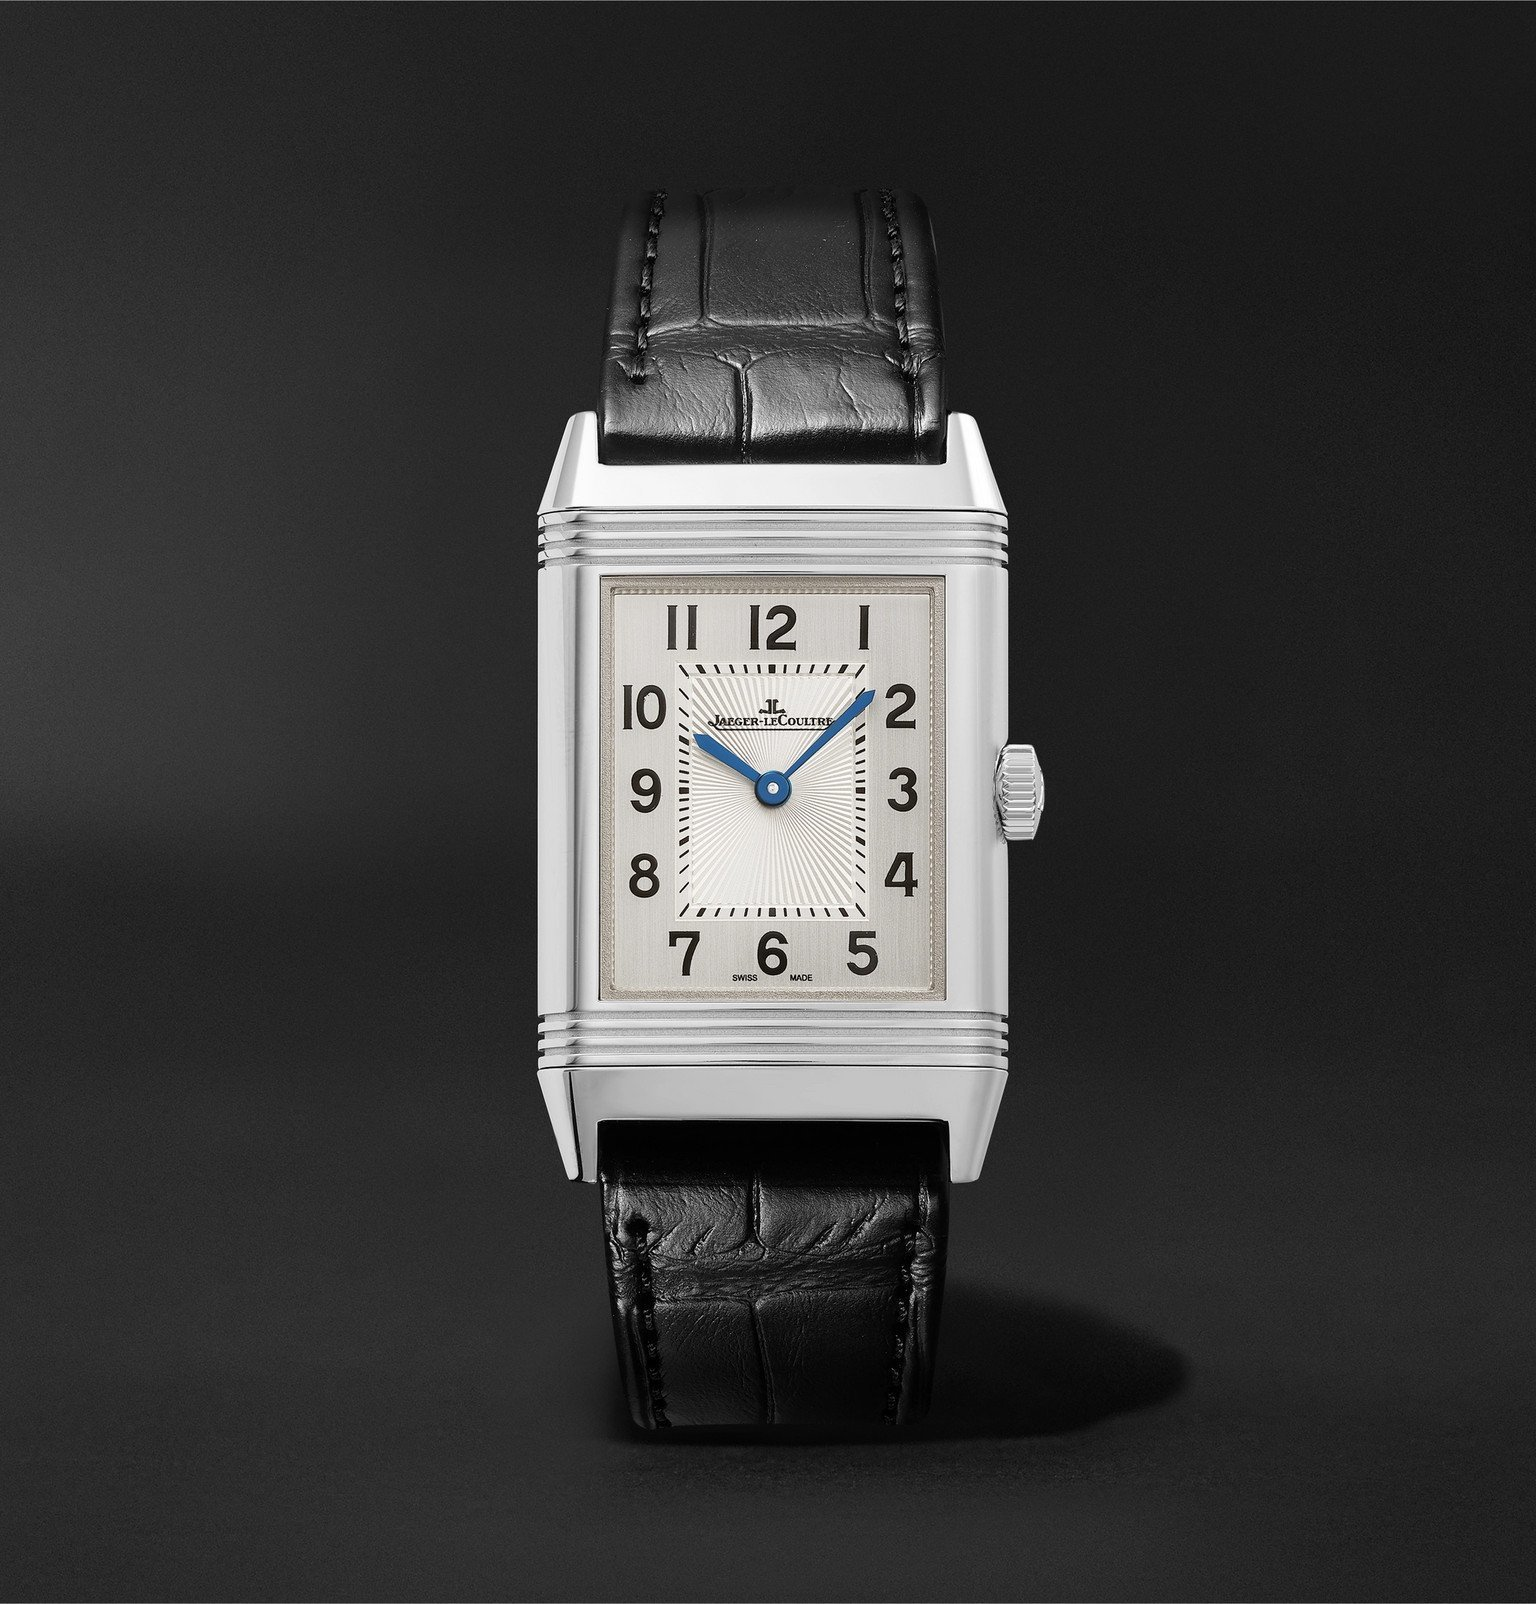 Photo: Jaeger-LeCoultre - Reverso Classic Medium Thin Automatic 24.4mm Stainless Steel and Alligator Watch, Ref. No. 2548520 - Silver